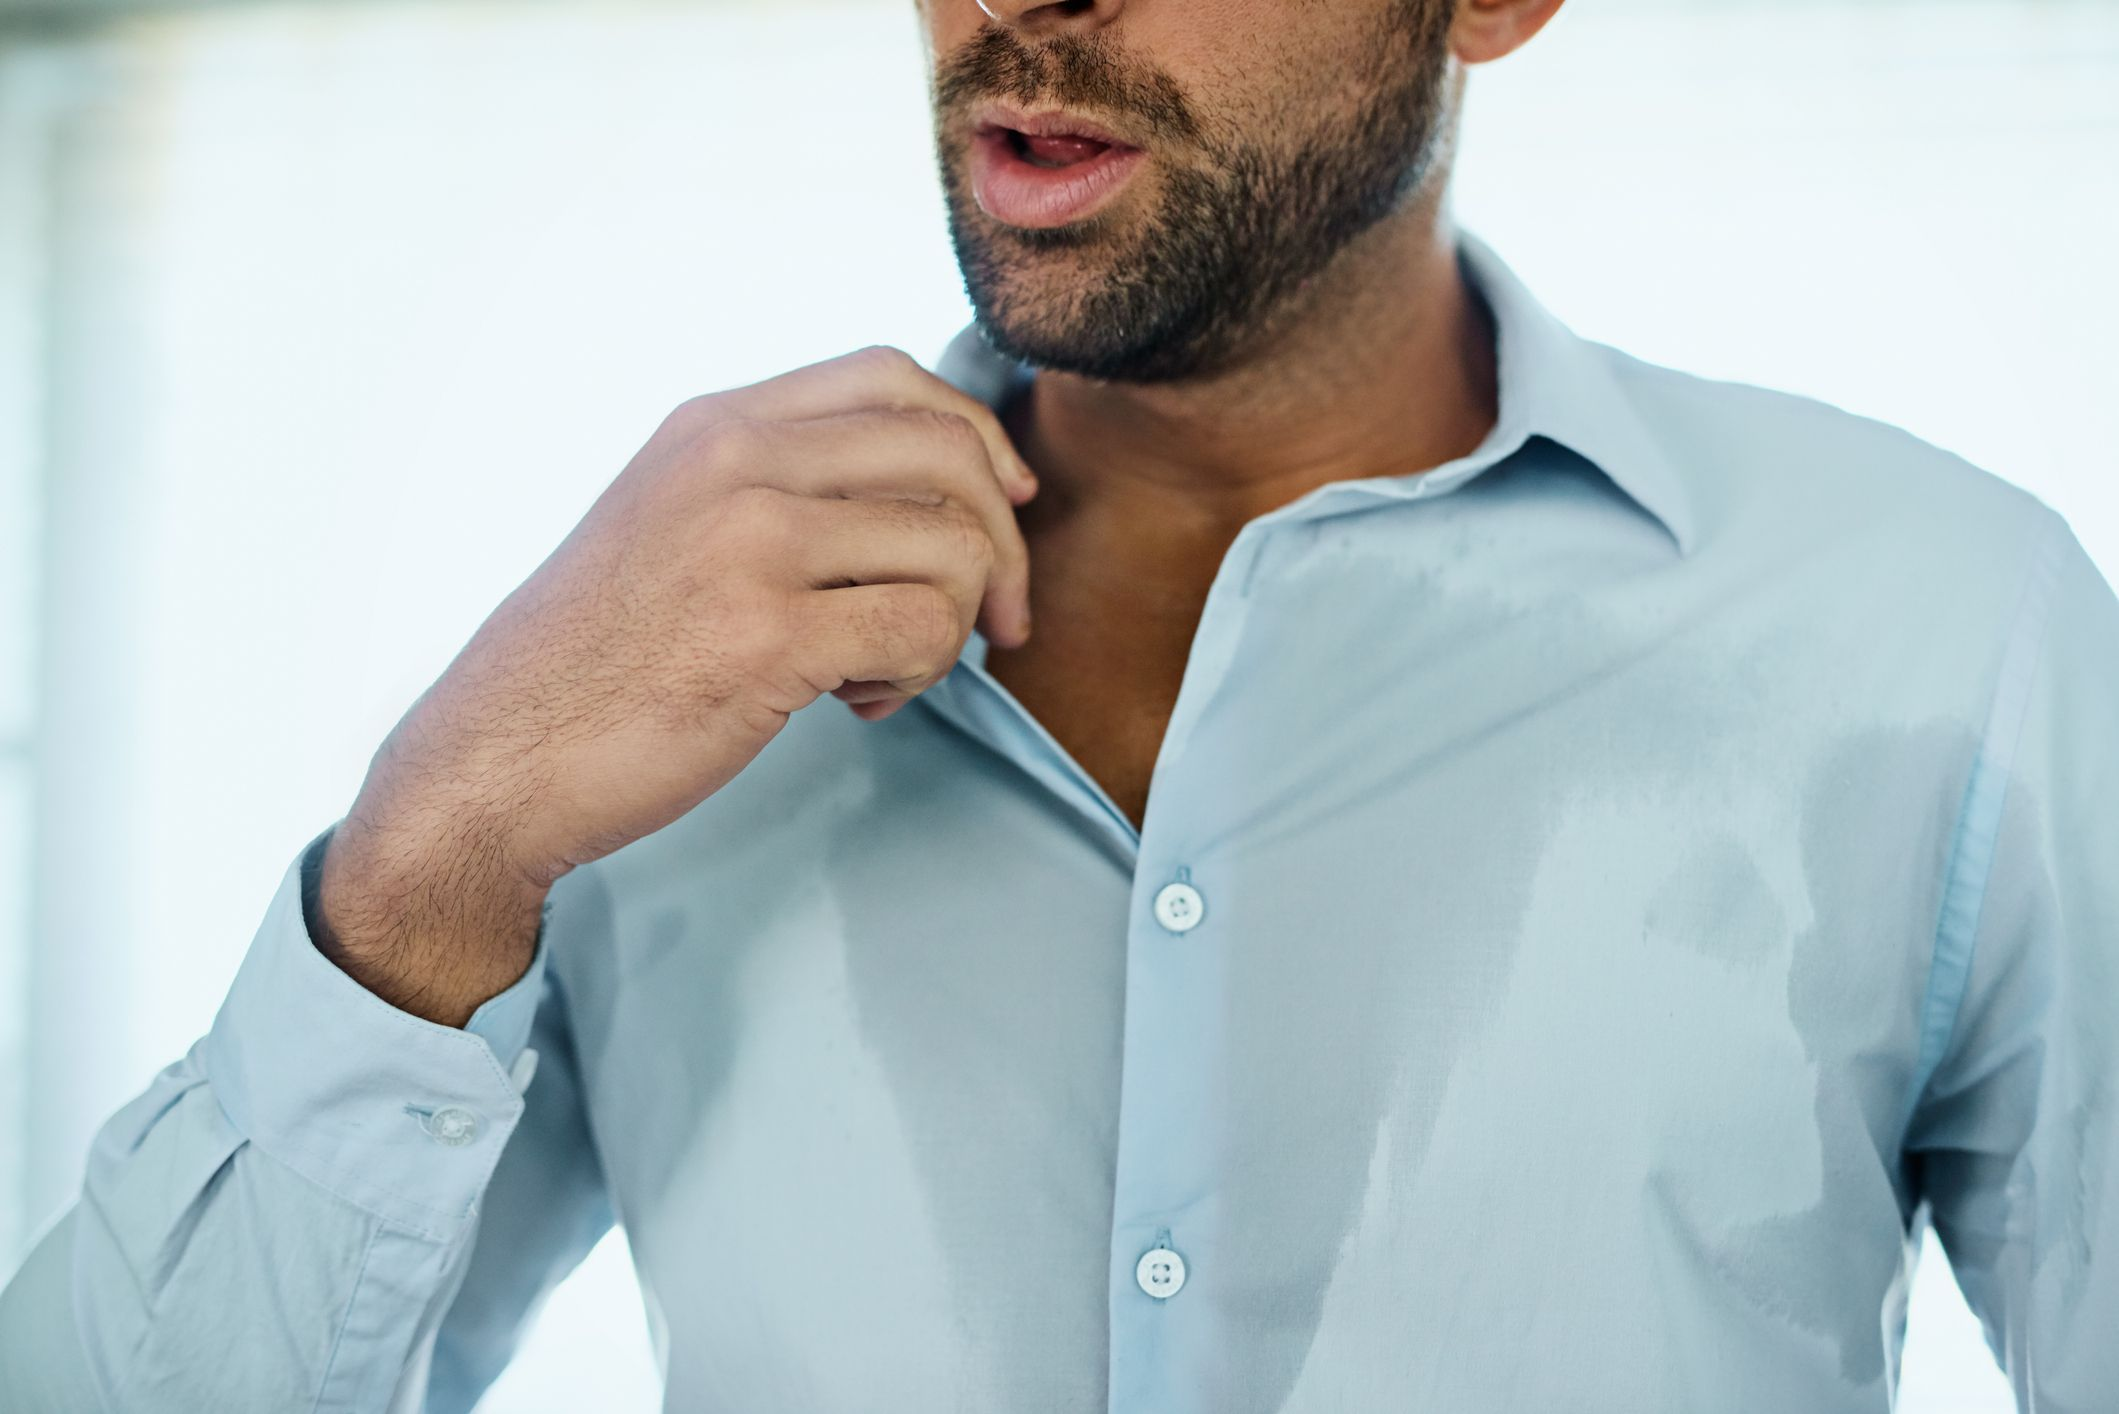 Medicine Iontophoresis Is An Emerging Treatment For Reducing Excessive Sweating - American Celiac